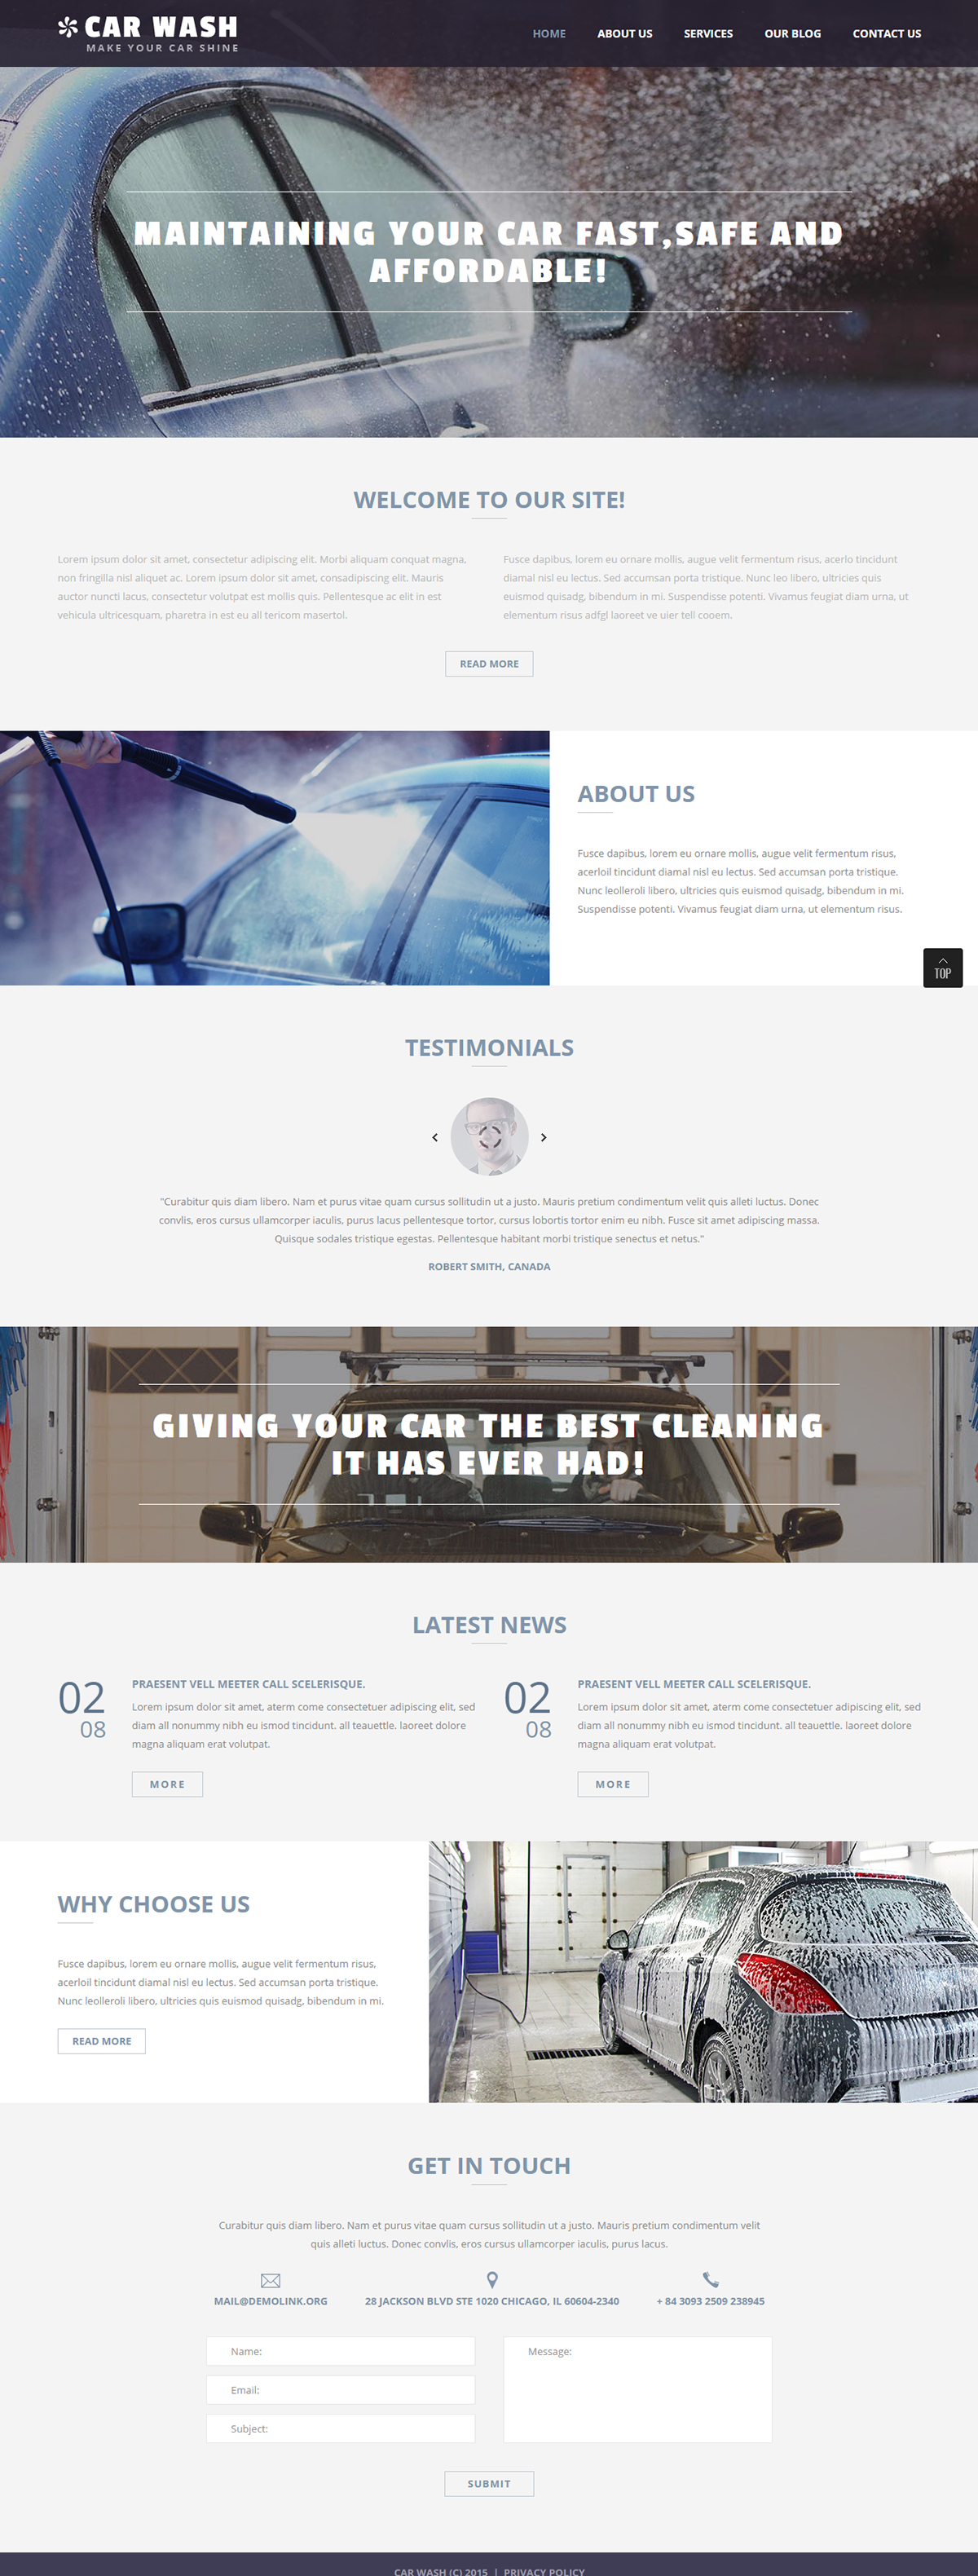 Car Wash Joomla Template | Joomla Templates | Pinterest